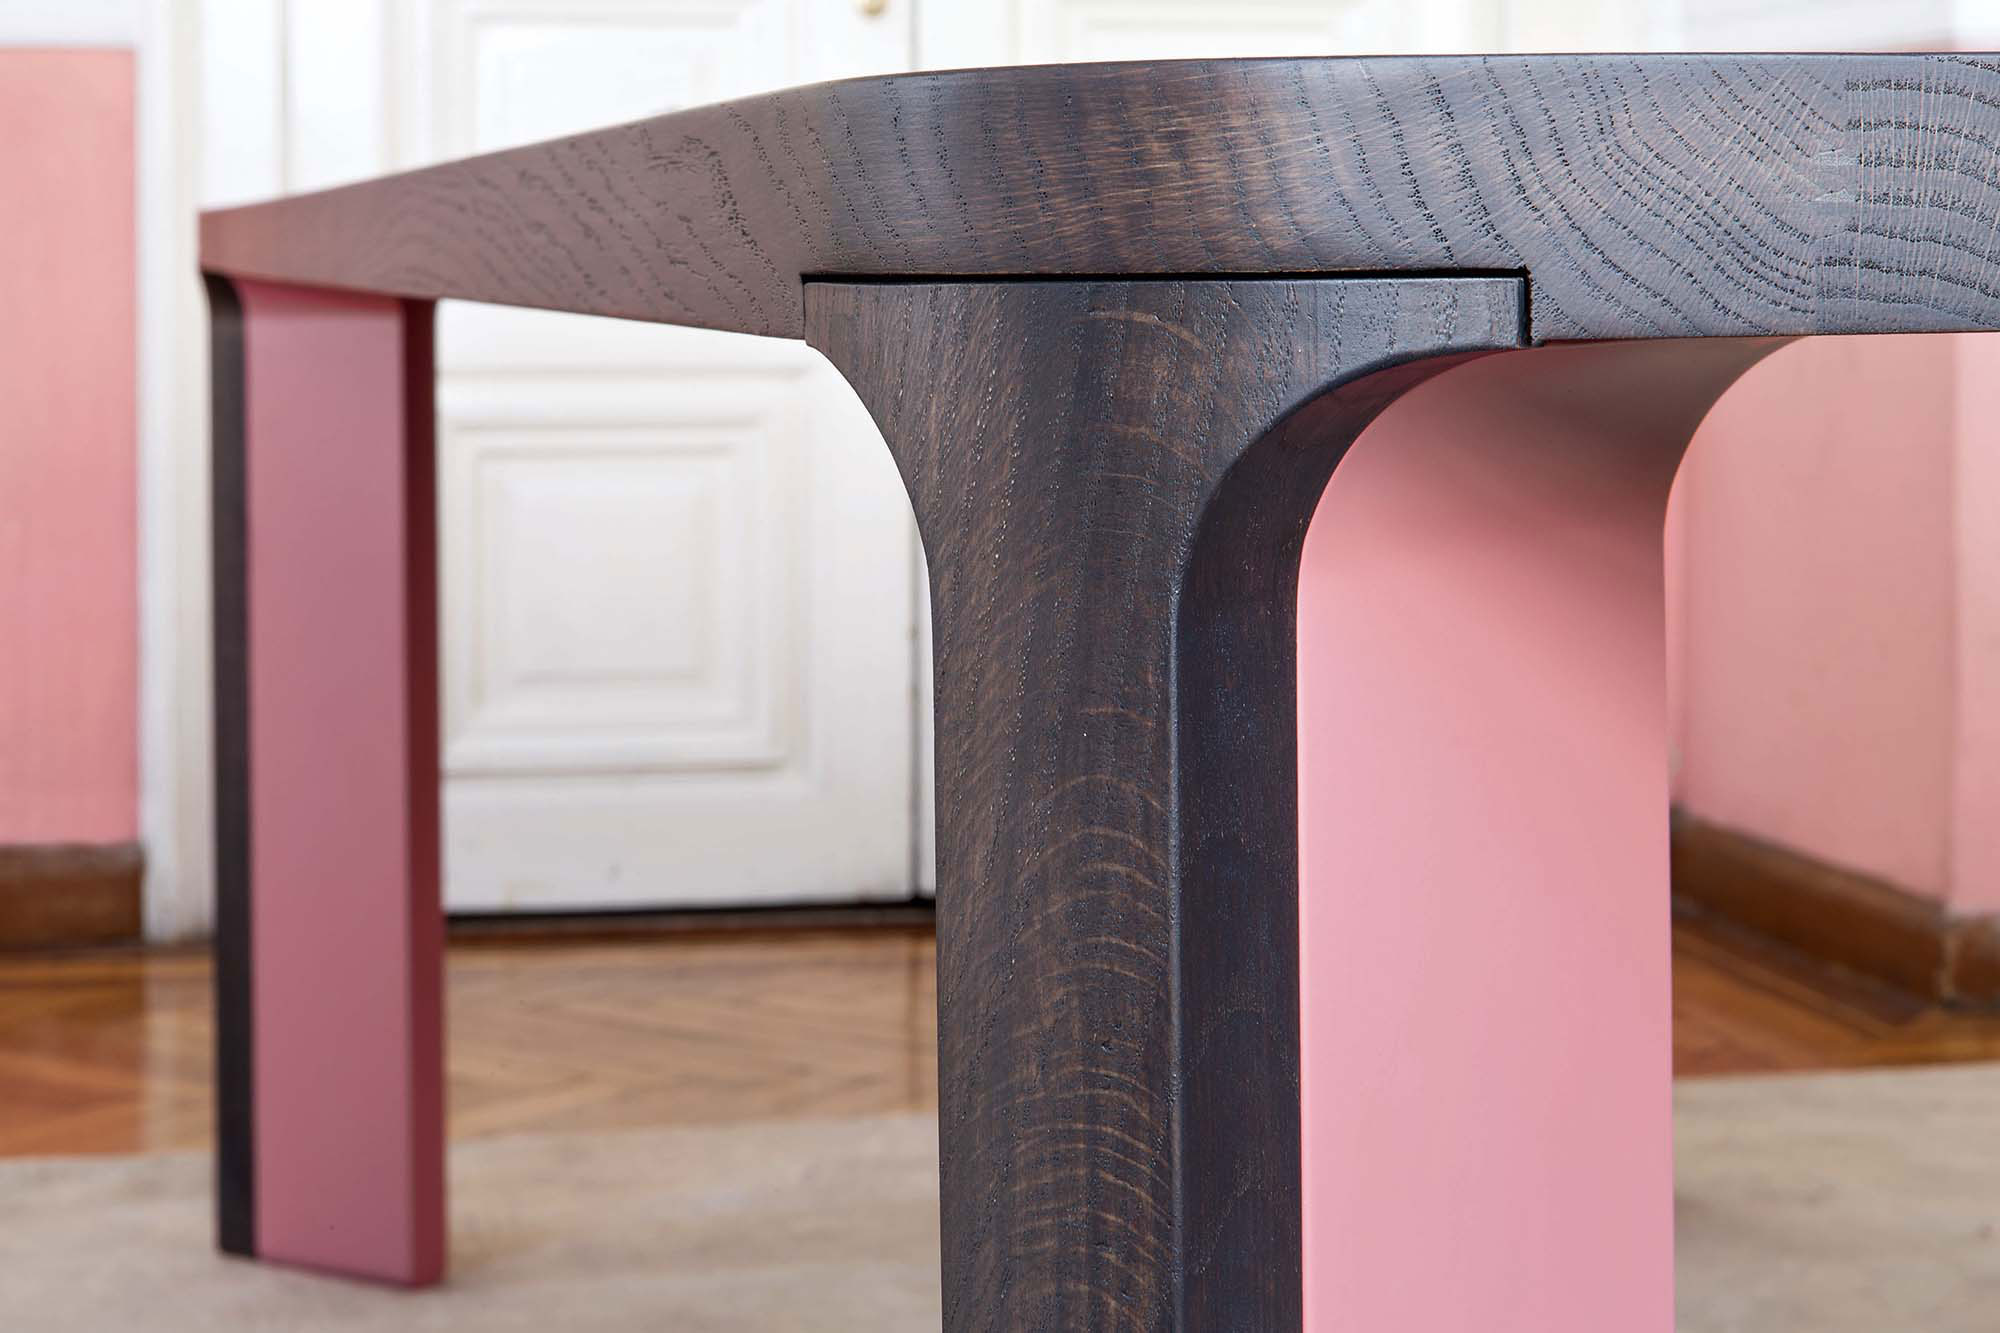 Acro-Bat 001 Table - <p>Table in various sizes with round corners. Top in wood and legs in two sections in wood and lacquer, or total lacquered.</p>  | Matter of Stuff